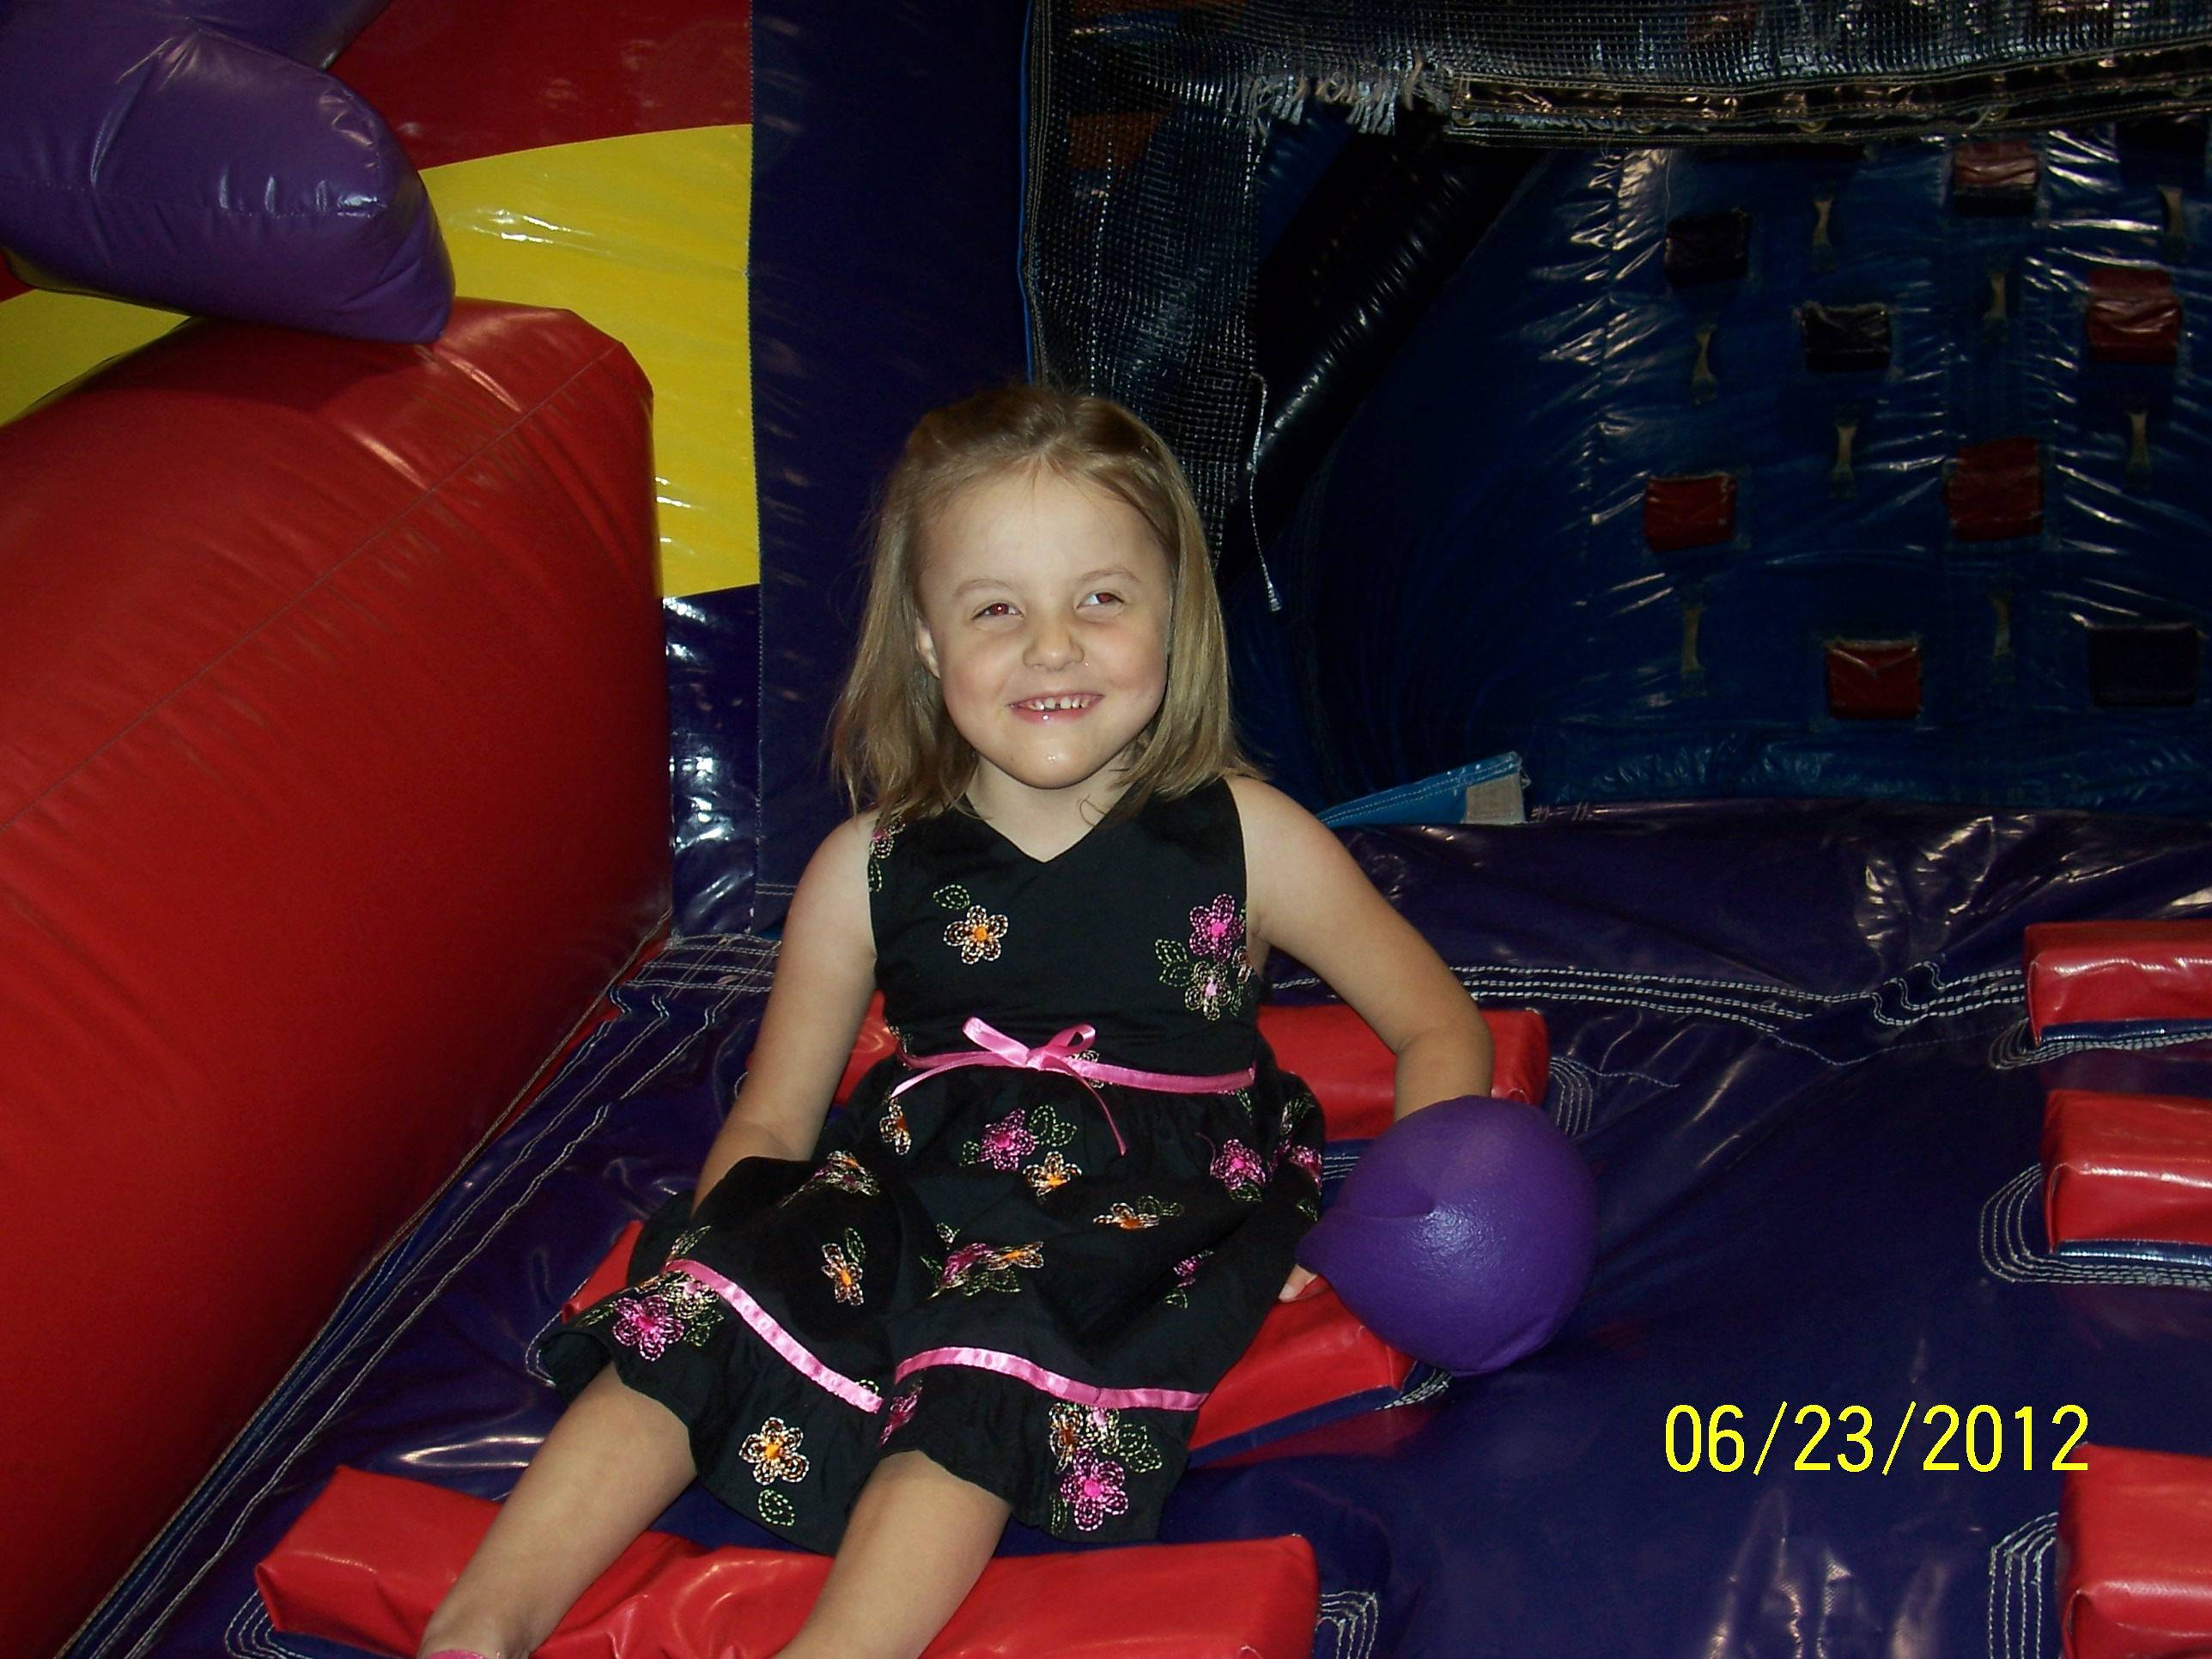 Emma Dislers of Roselle, IL, who has Cerebral Palsy will be able to get intensive therapy at Euro-Peds Intensive Pediatric PT Center in Michigan thanks to community support and a scholarship.